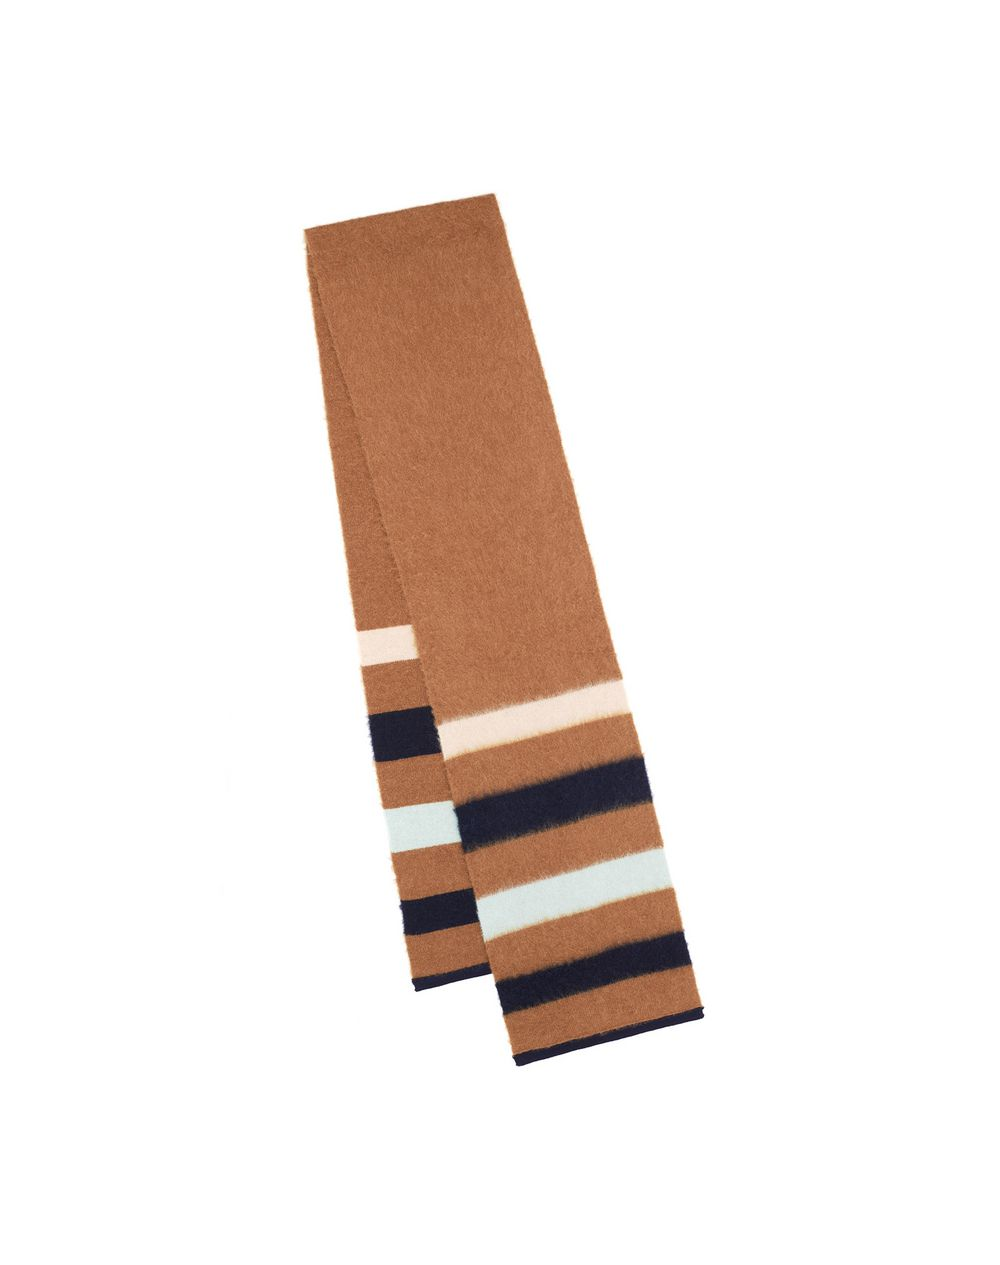 STRIPED SCARF IN CASHMERE BLEND - Lanvin